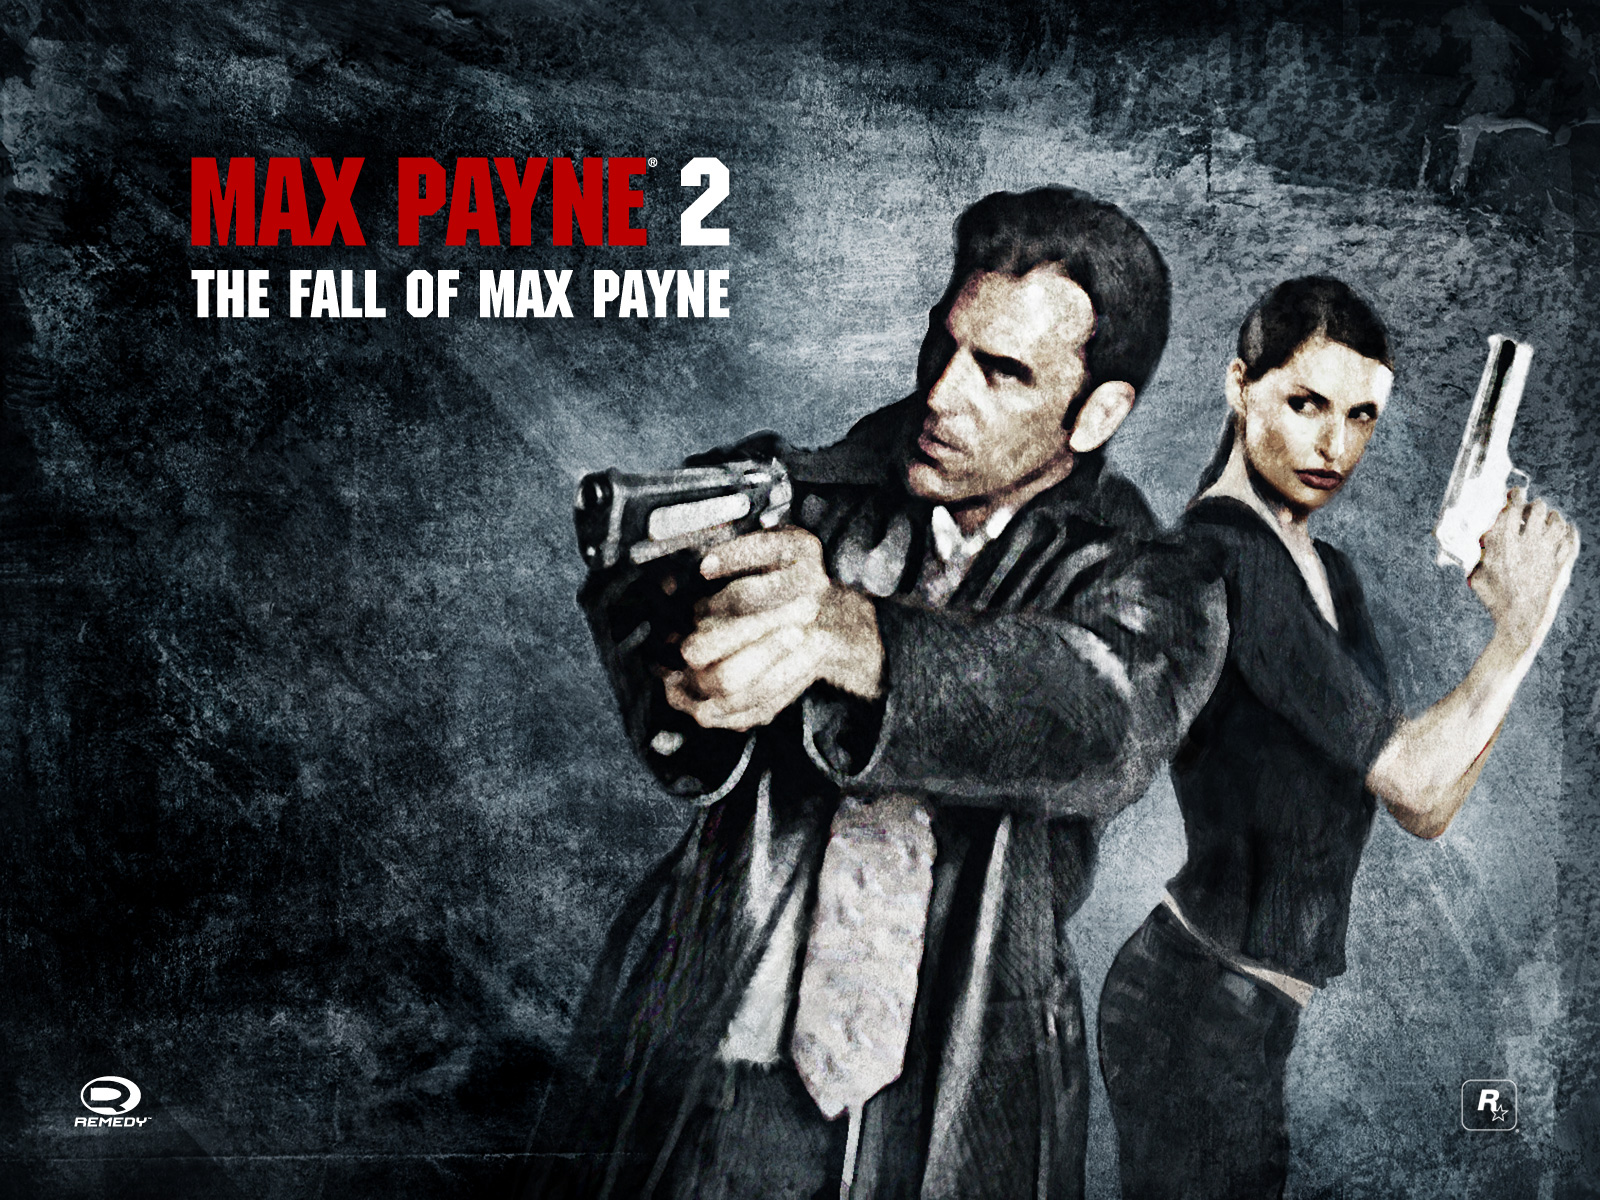 Android Wallpapers Fall Wallpapers Fond D Ecran Pour Max Payne 2 The Fall Of